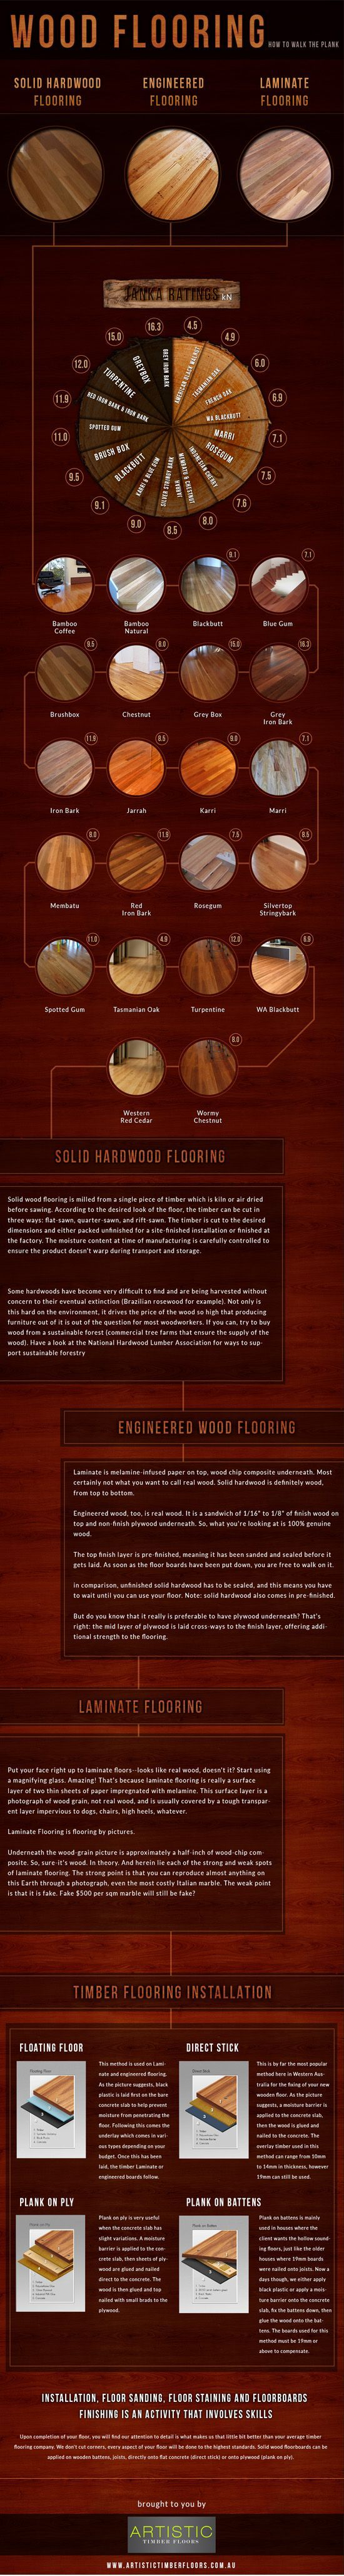 Different Types Of Kitchen Flooring 17 Best Ideas About Types Of Flooring On Pinterest Types Of Wood